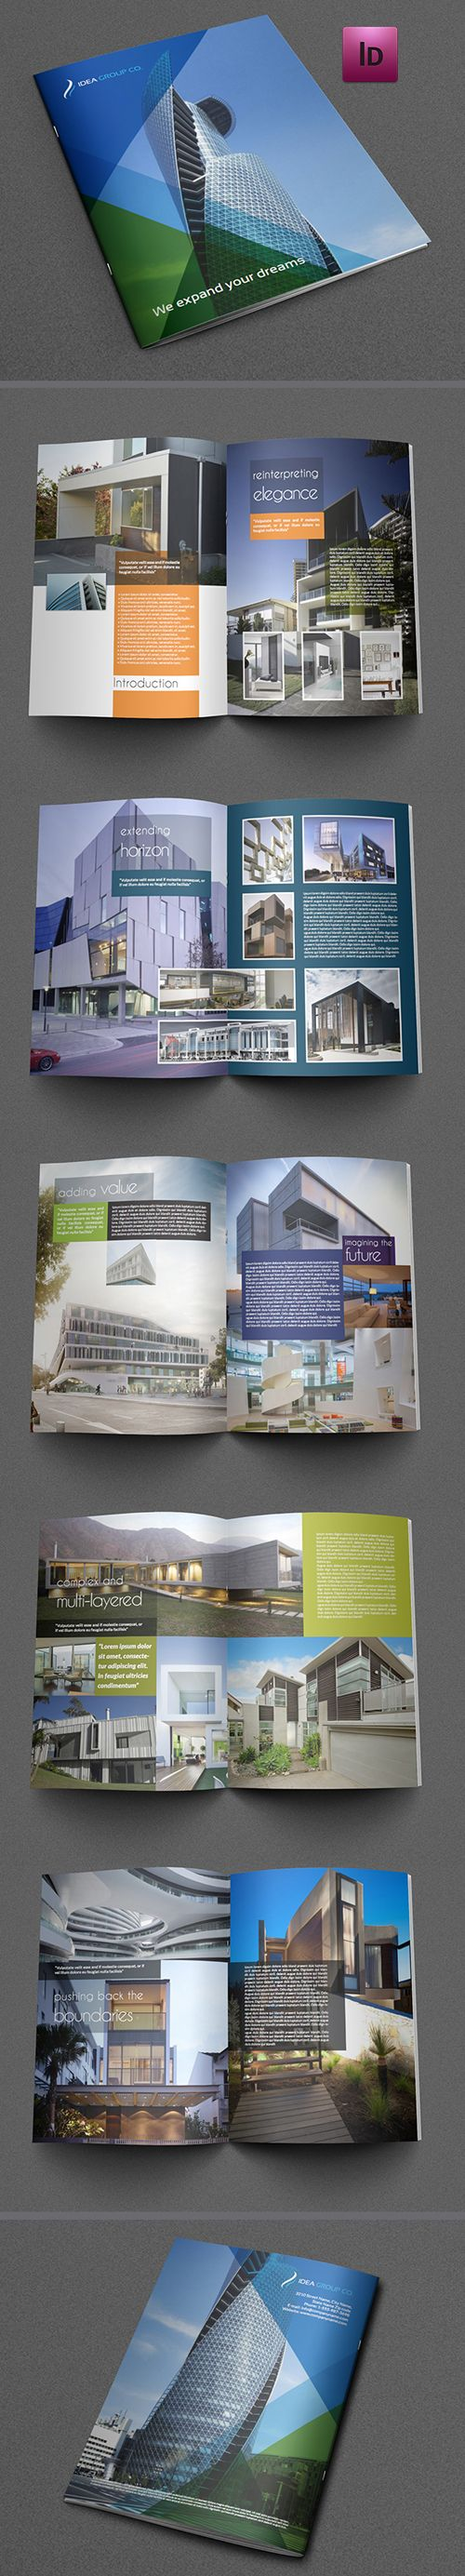 Architectural Brochure Template Brochuredesign Corporatebrochure